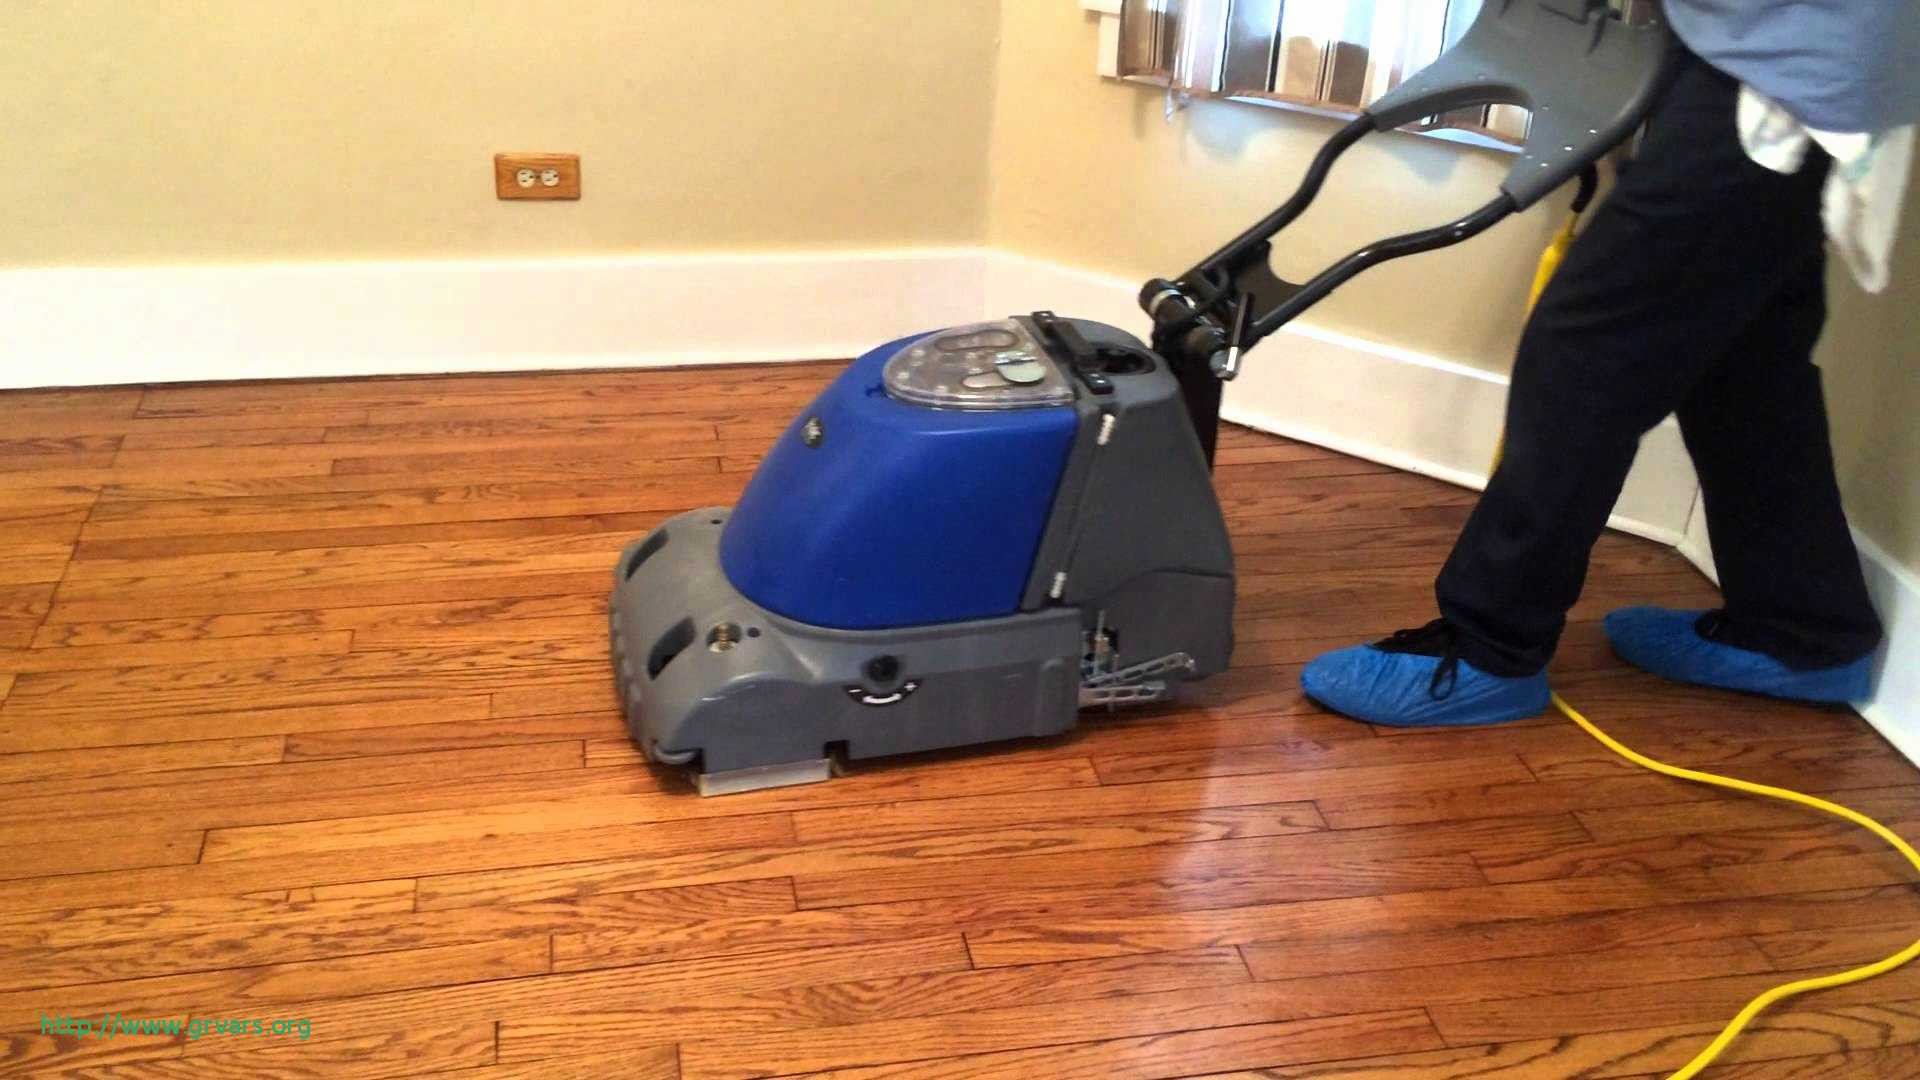 28 Fantastic Vacuum Cleaners for Hardwood Floors Walmart 2021 free download vacuum cleaners for hardwood floors walmart of 25 meilleur de floor steamers at walmart ideas blog with regard to full size of kitchen bissell steam mop reviews eurosteam tile and grout stea